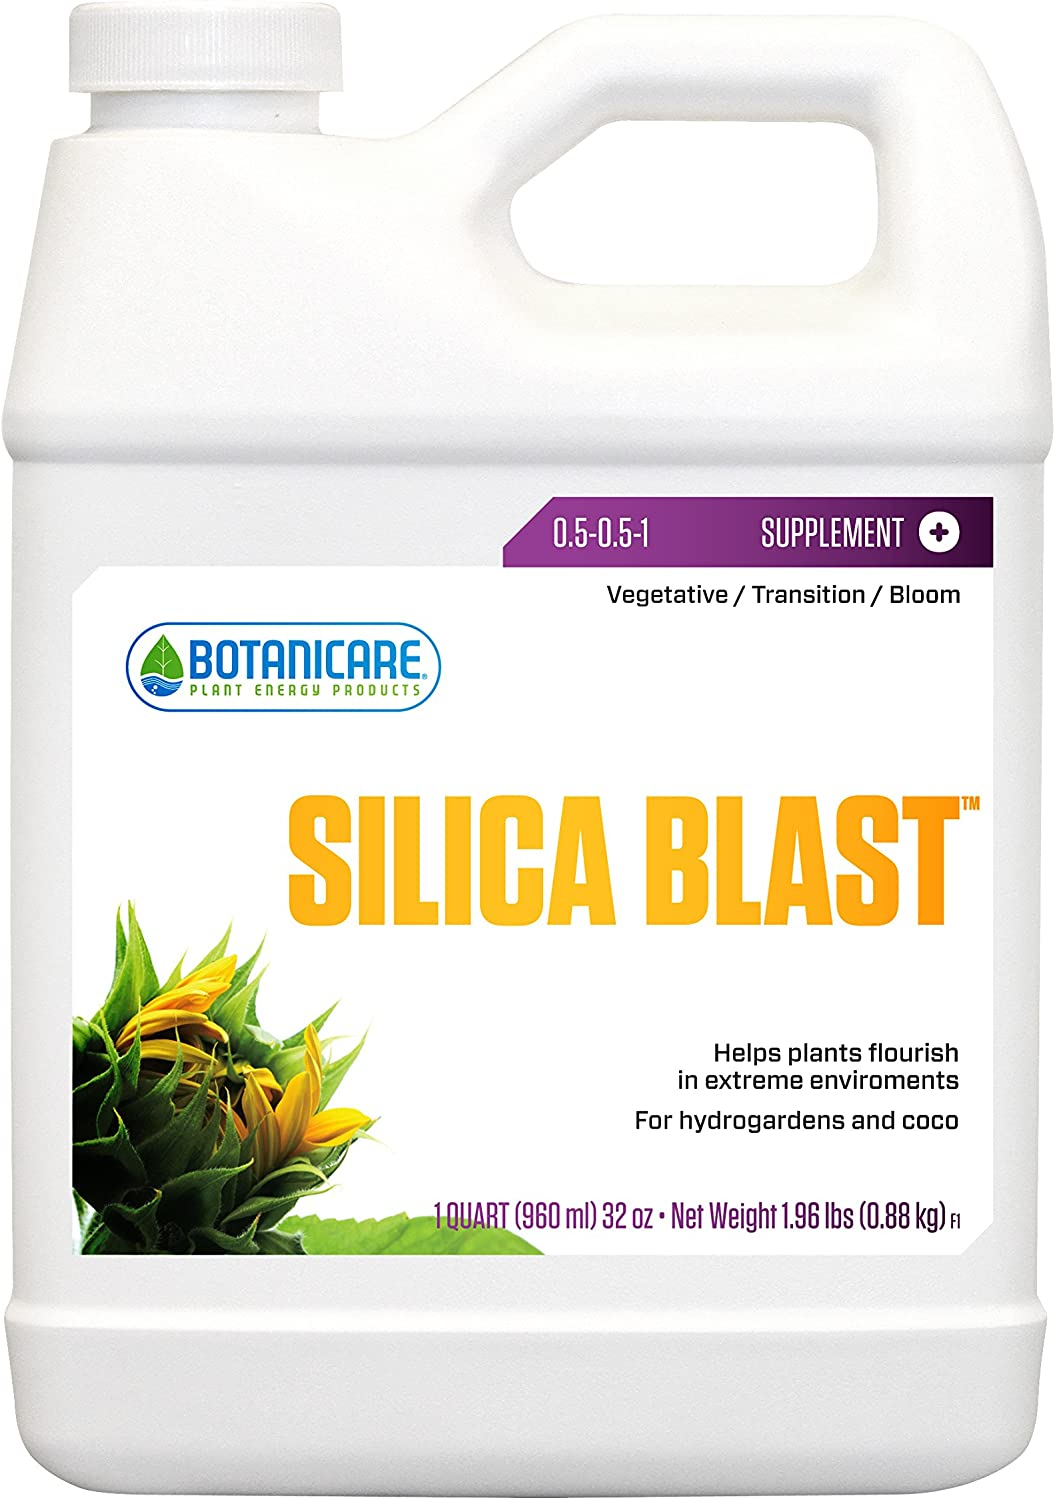 Botanicare HGC732485 Silica Blast Helps Plants Flourish In Extreme Environments, For Hydrogardens & Coco, Quart